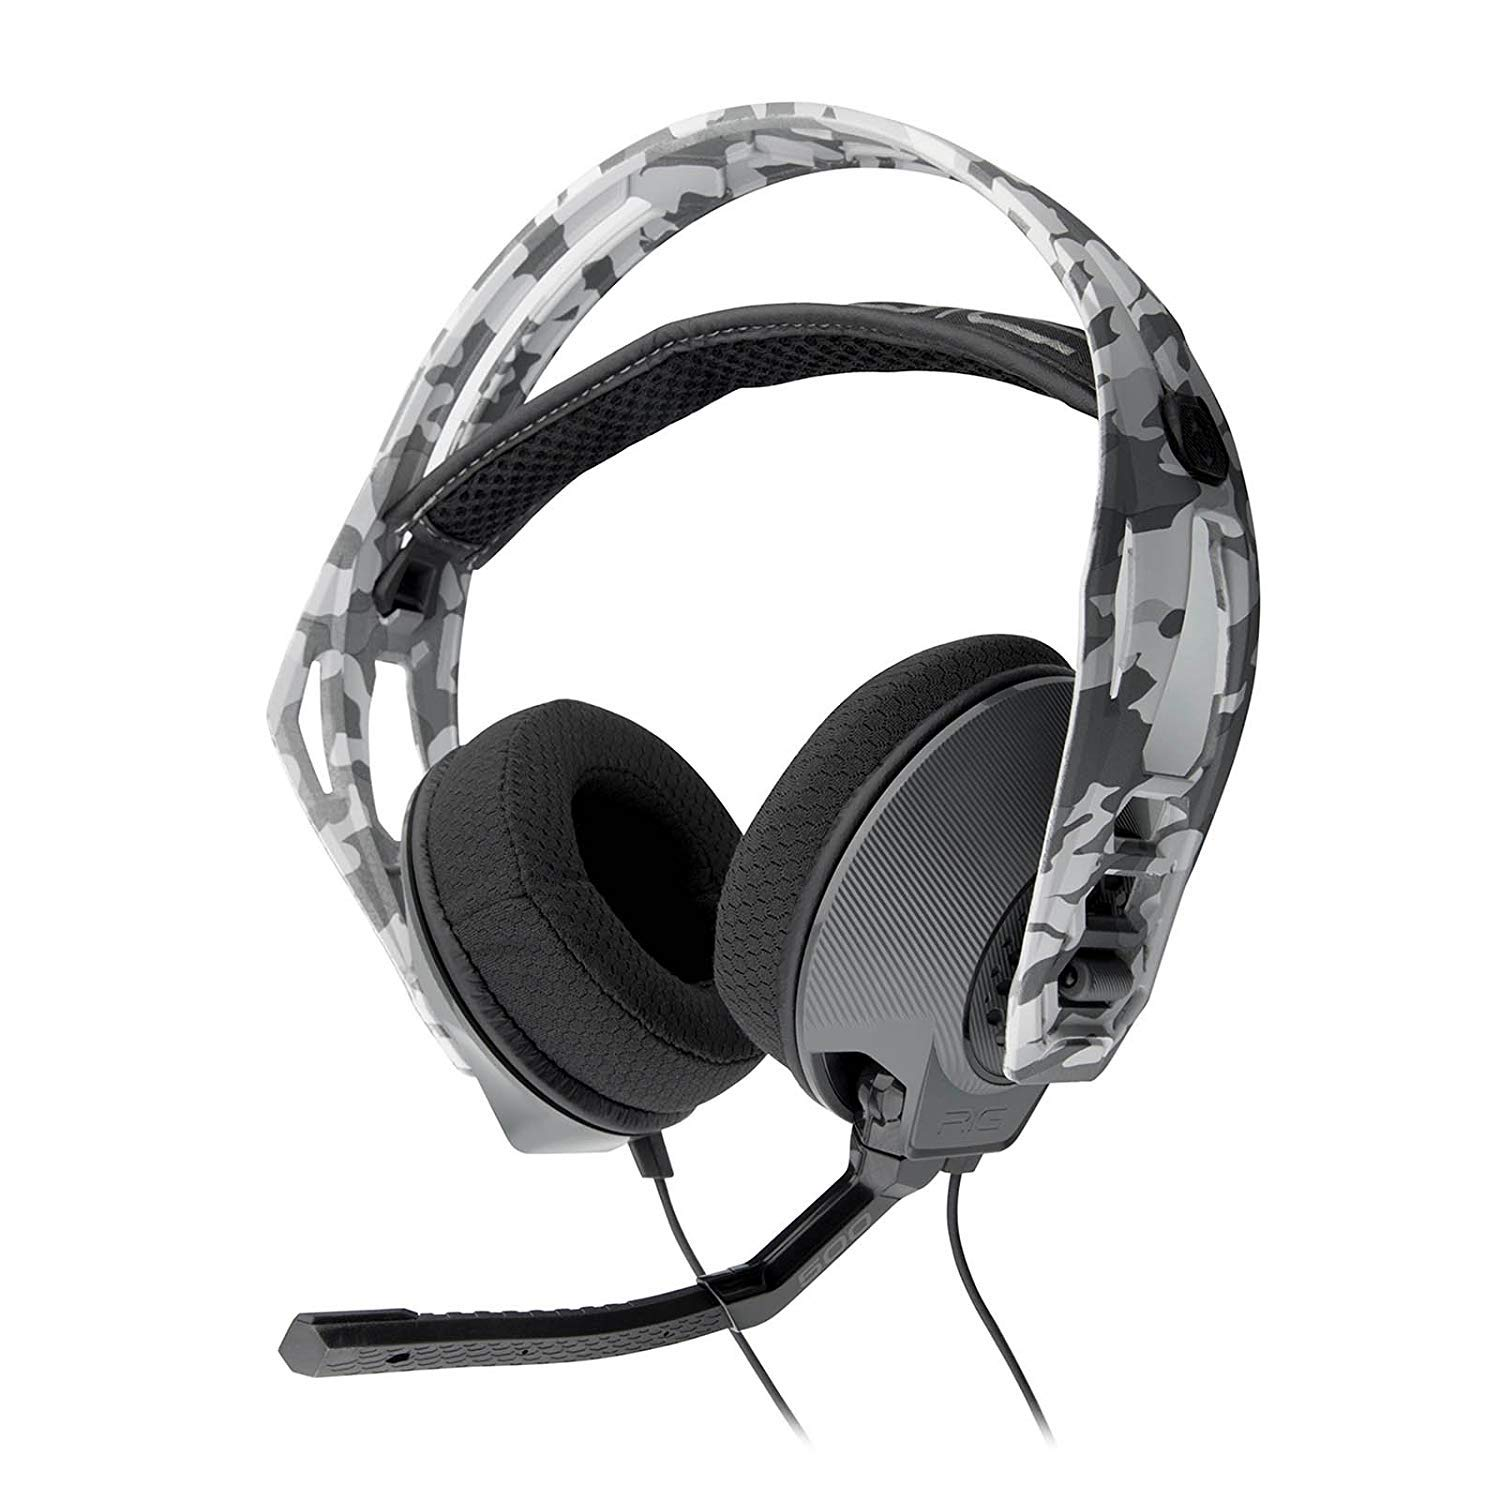 Plantronics RIG 500HS Stereo PS4 Gaming Headset Headphones & Boom Mic - White/Camo (Certified Refurbished)